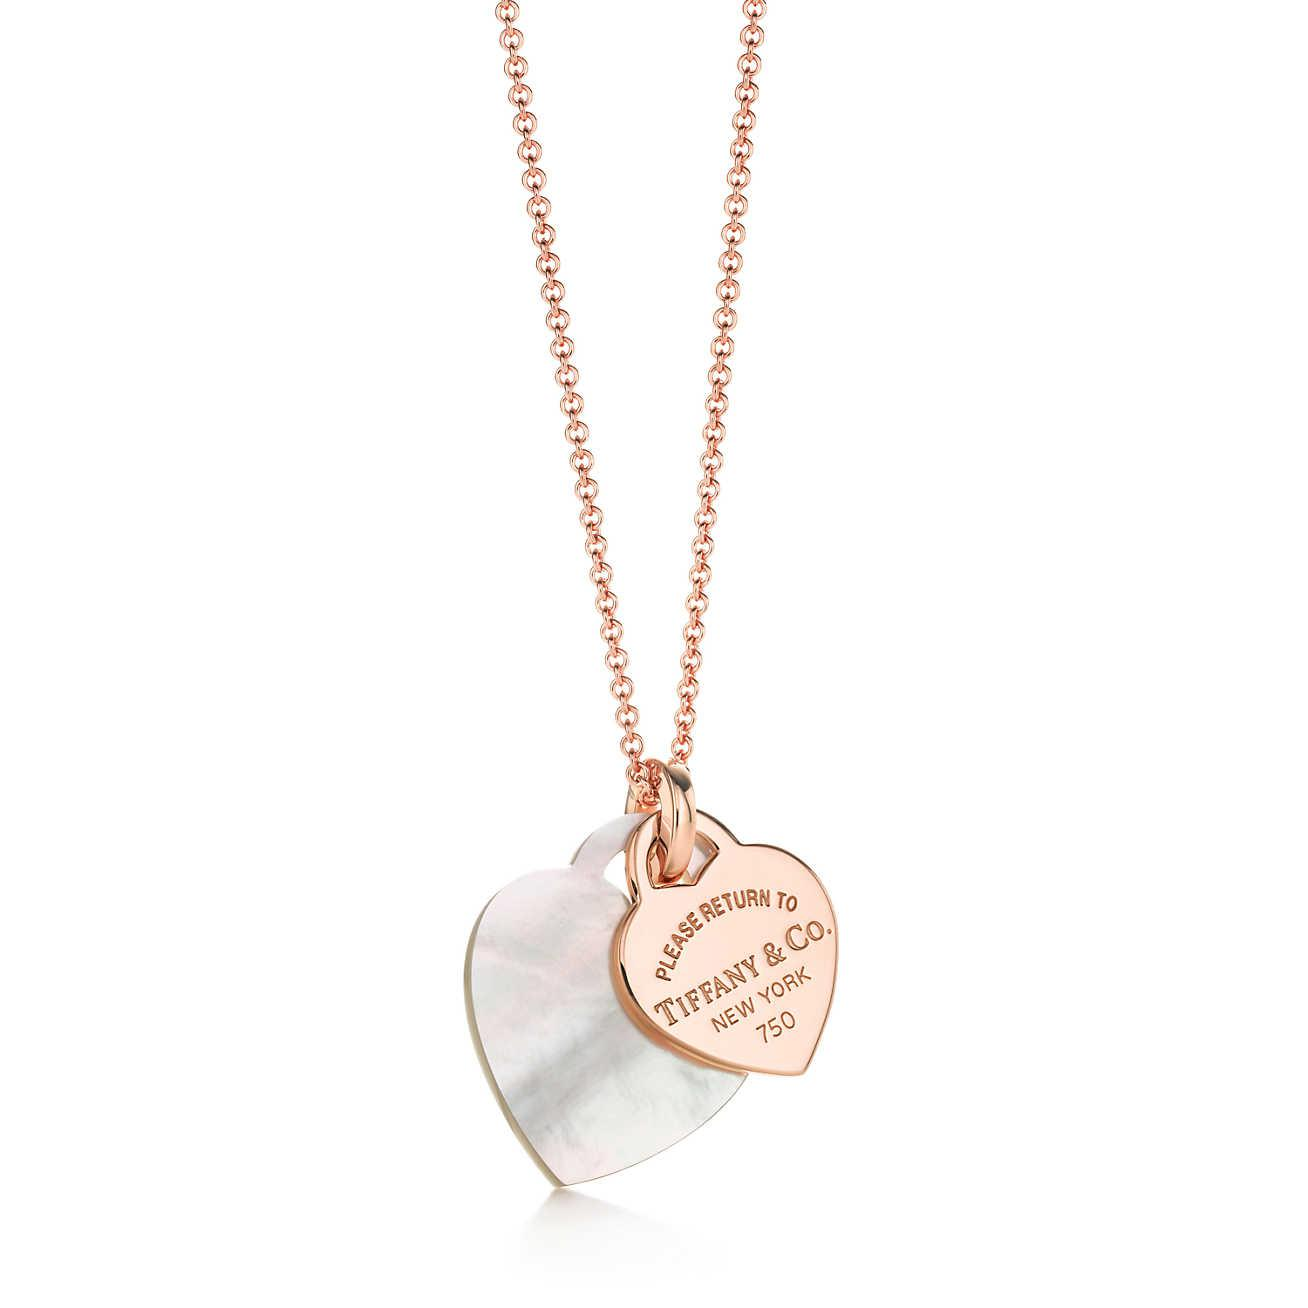 Tiffany & Co. 18kt rose gold 24 long chain - Metallic NgdacB